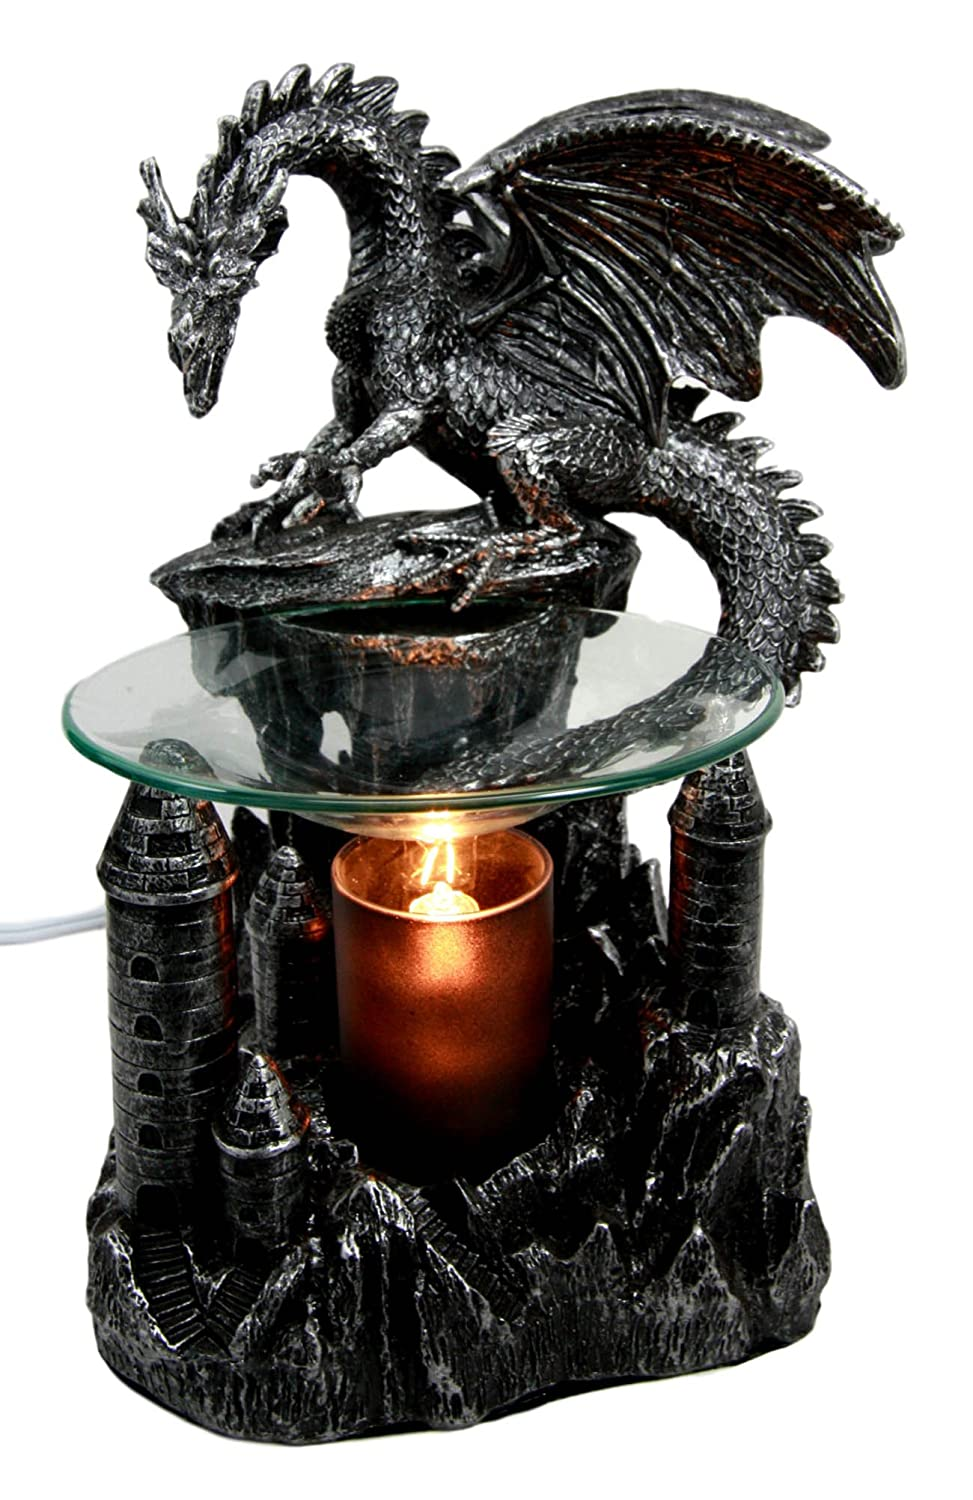 "Ebros Smaug Castle Guardian Dragon Electric Oil Burner Tart Warmer Aroma Scent Statue 9.5"" Tall Figurine Dungeons and Dragons Decorative Decor for Aromatherapy Accessory Halloween Prop"